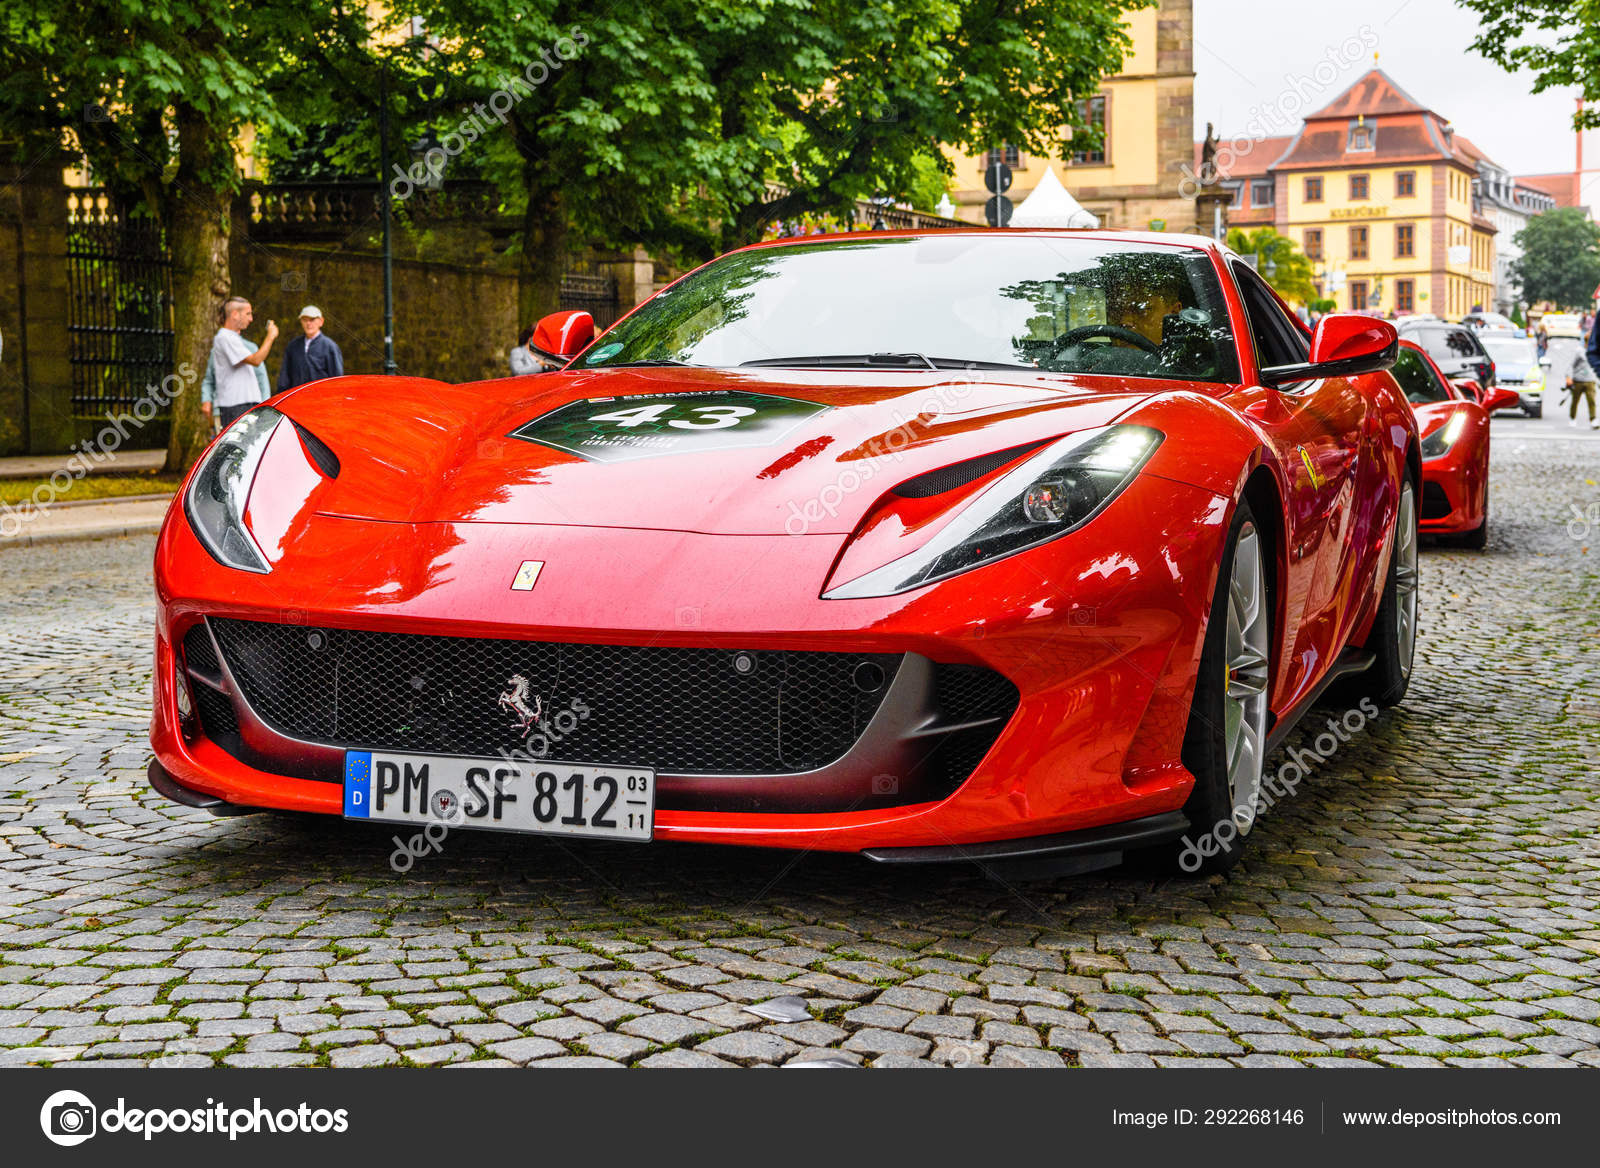 Germany Fulda Jul 2019 Red Ferrari 812 Superfast Type F152m Is A Front Mid Engine Rear Wheel Drive Grand Tourer Produced By Italian Sports Car Manufacturer Ferrari That Made Its Debut At The 2017